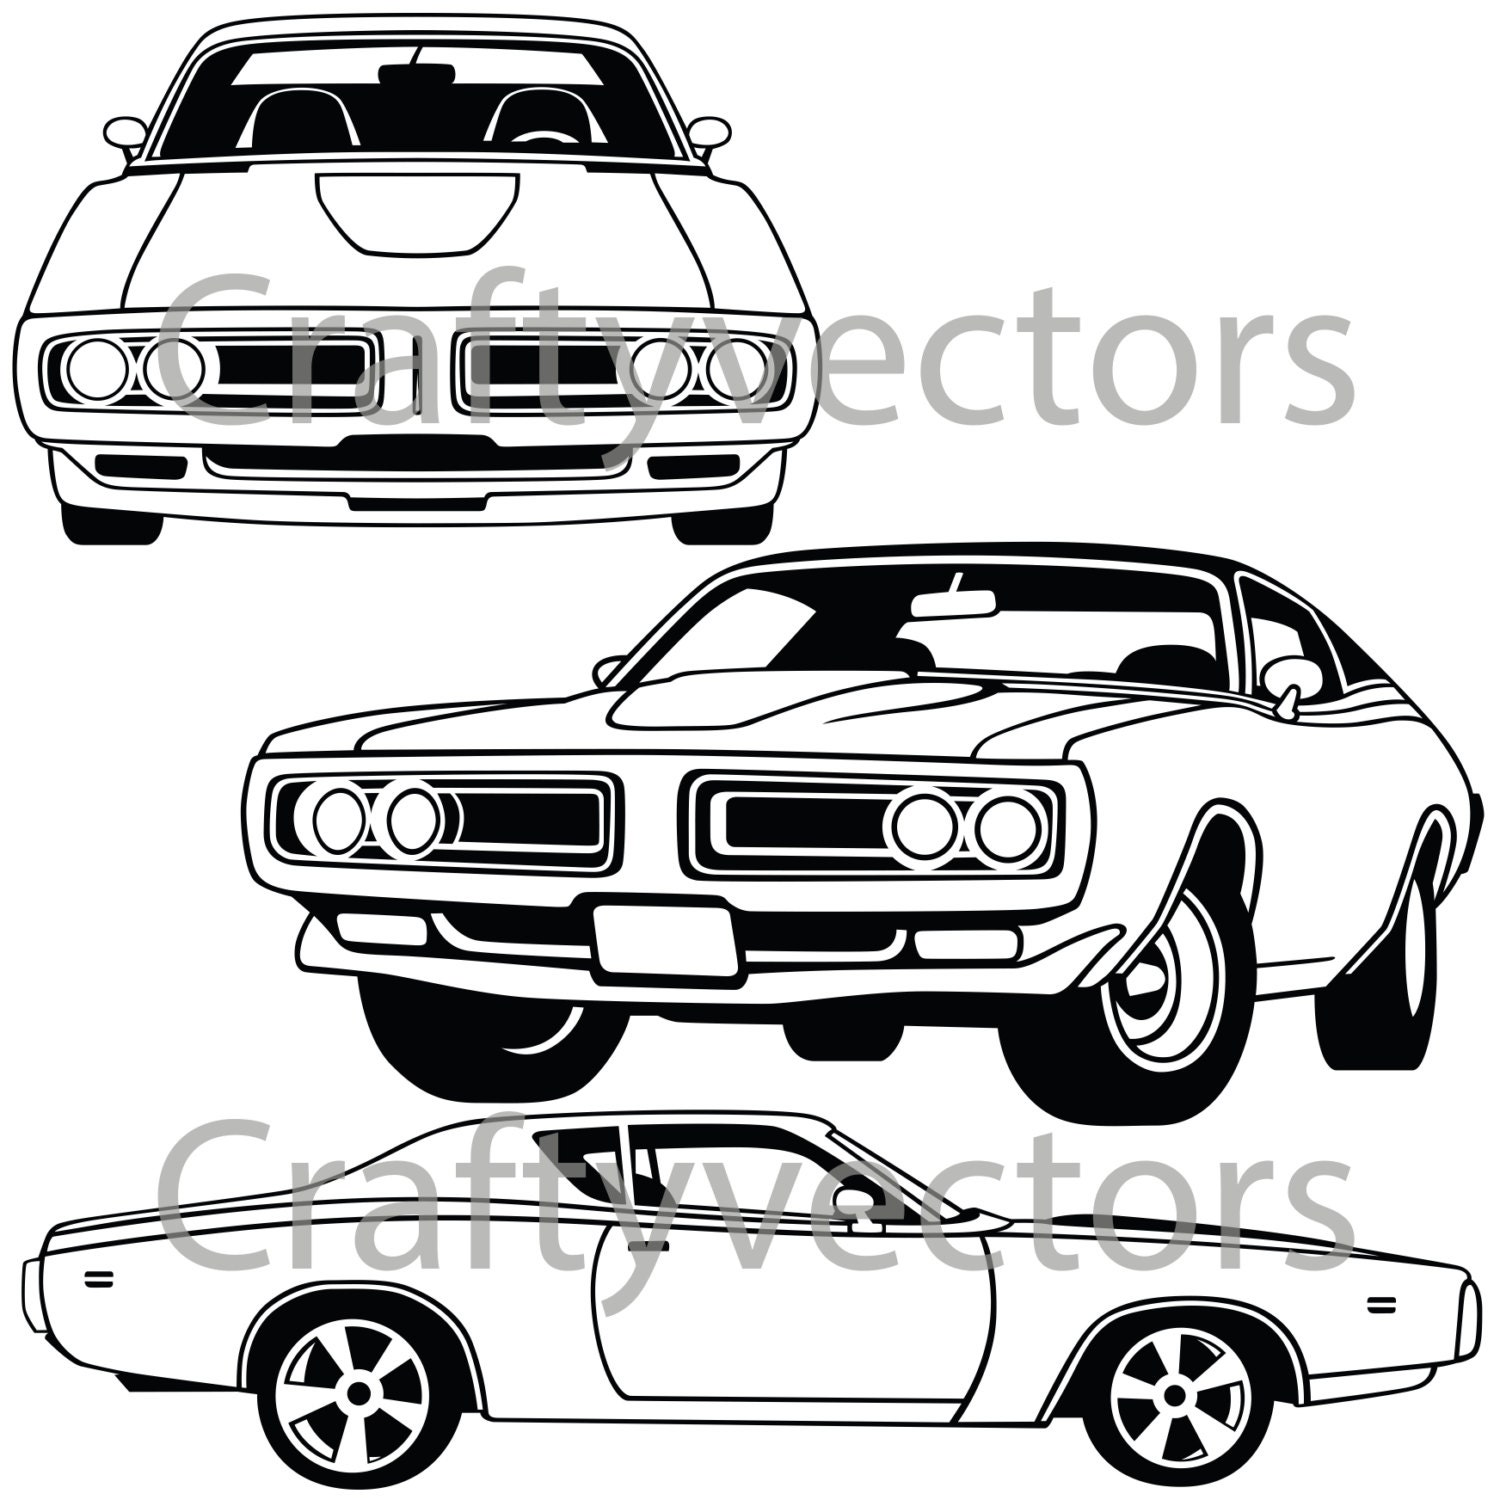 dodge charger 71 vector file etsy 1970 Coronet R T Convertible 50